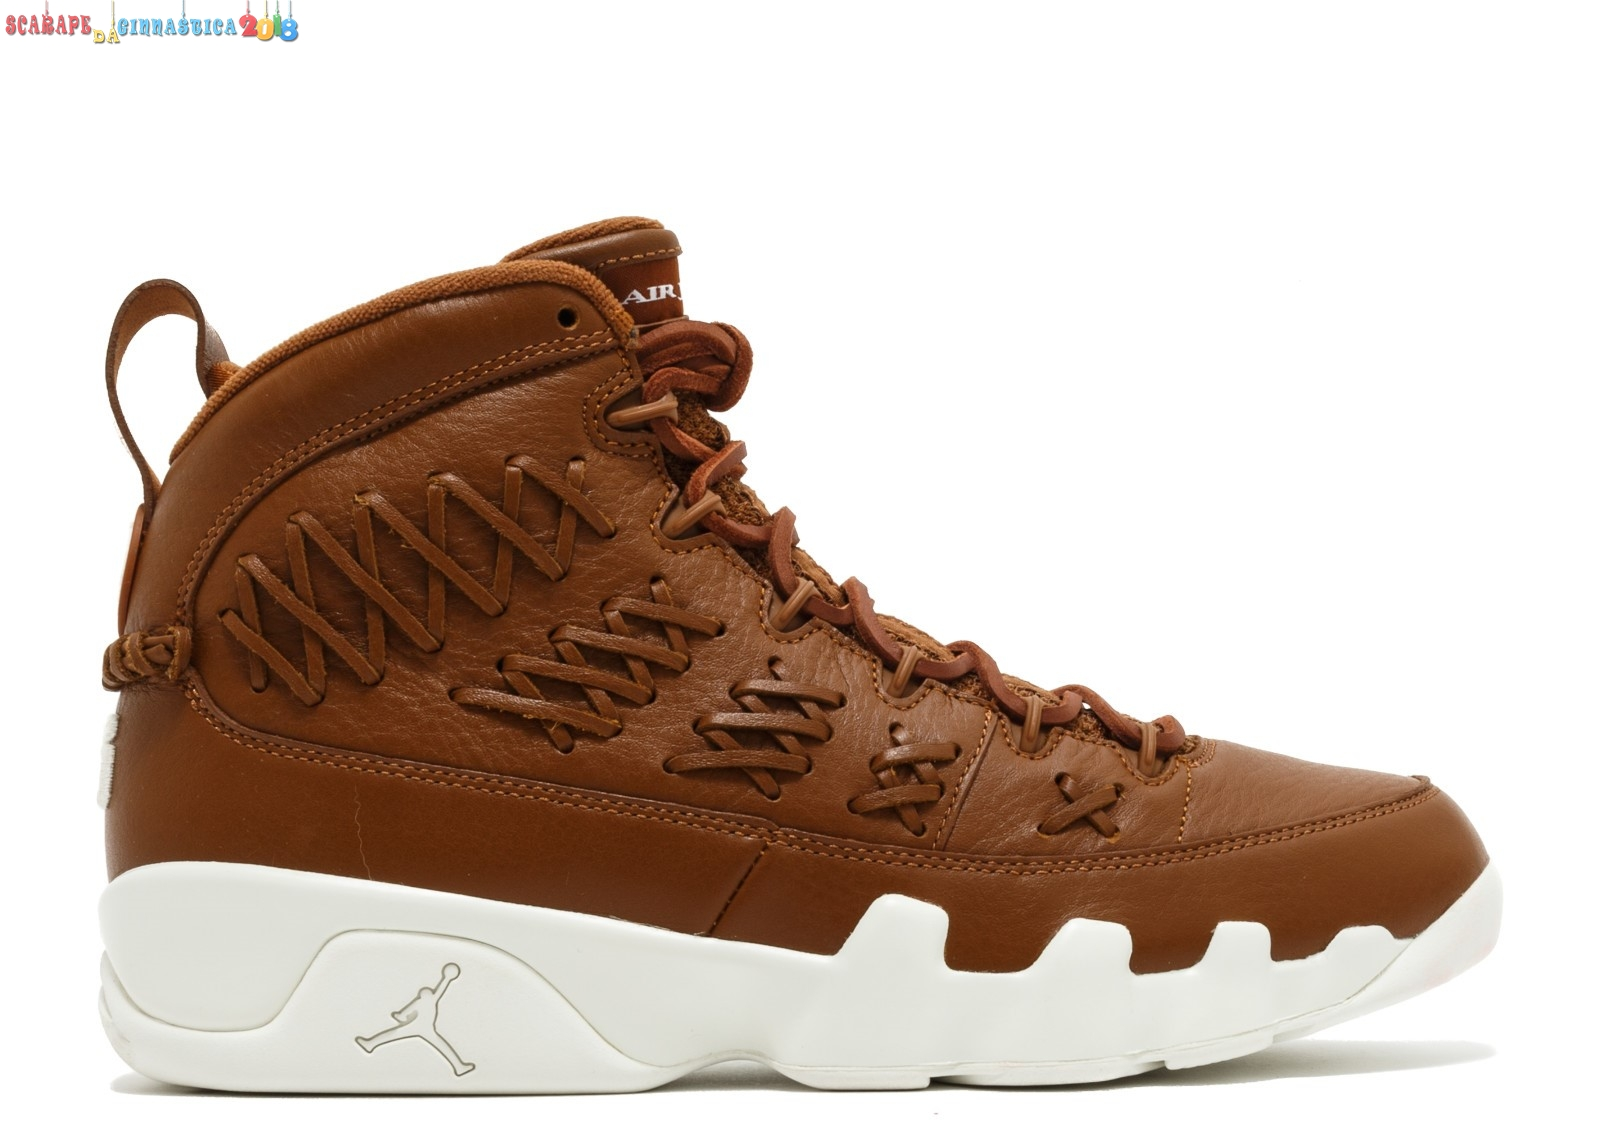 Buy Air Jordan 9 Ret Pinnacle Pack Buio Marrone (897560-203) - Uomo Replica